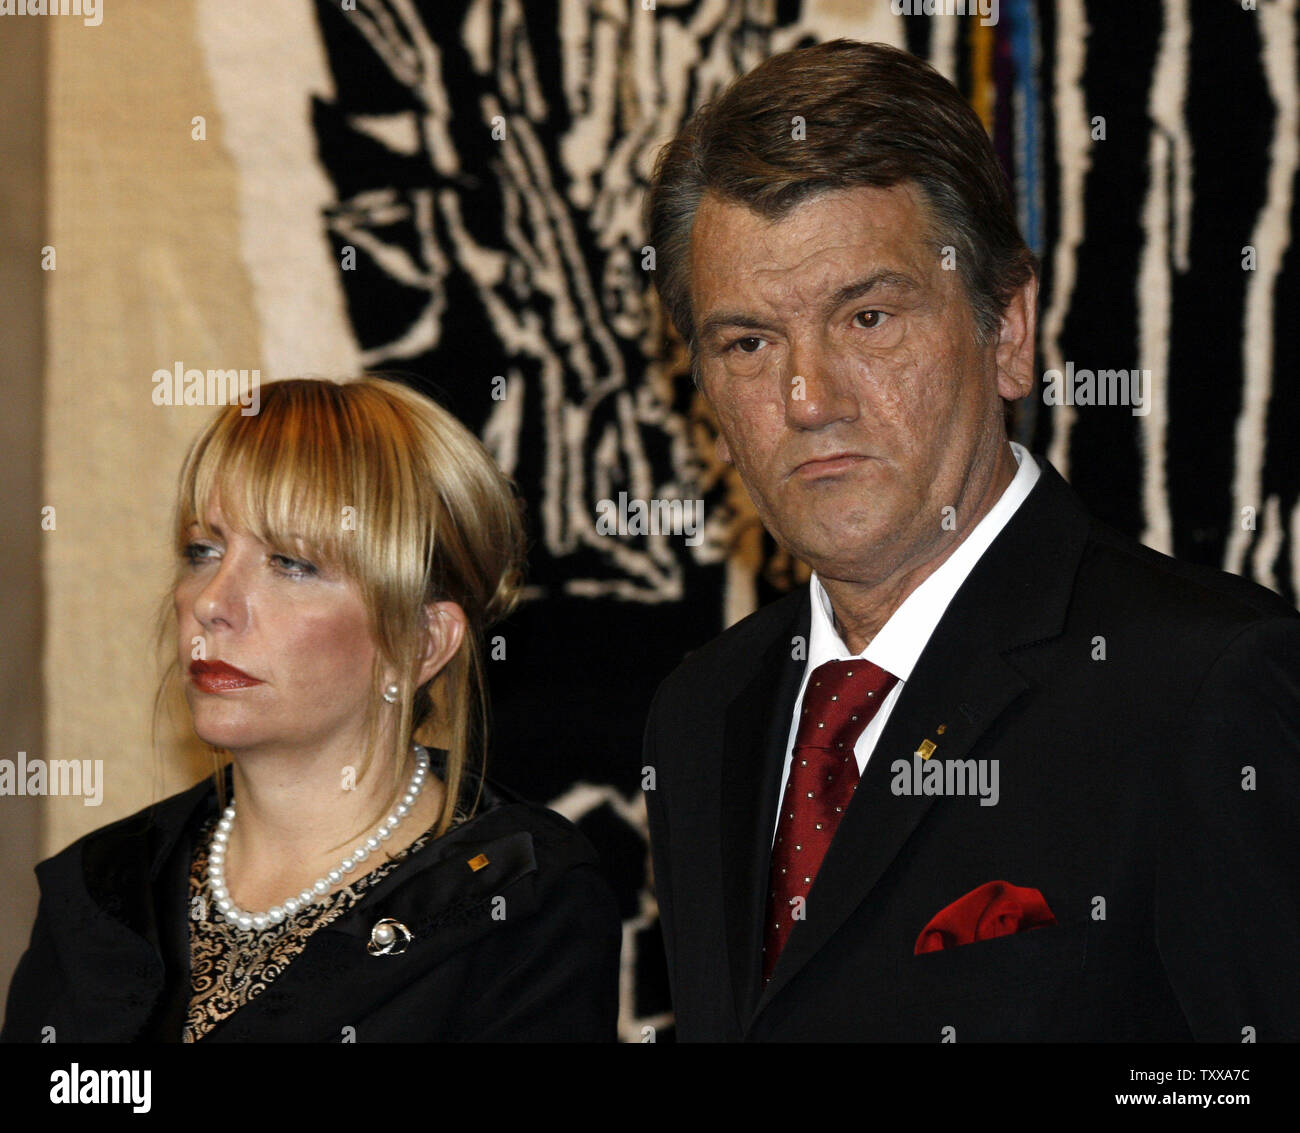 Ukraine's President Viktor Yushchenko with his wife Ekaterina attends the opening ceremony of an exhibition devoted to the Holocaust in Kiev on September 26, 2006. Moshe Katsav arrived in Kiev to take part in commemorations marking the 65th anniversary of the Nazi massacre at Babi Yar.  (UPI Photo/Sergey Starostenko) - Stock Image